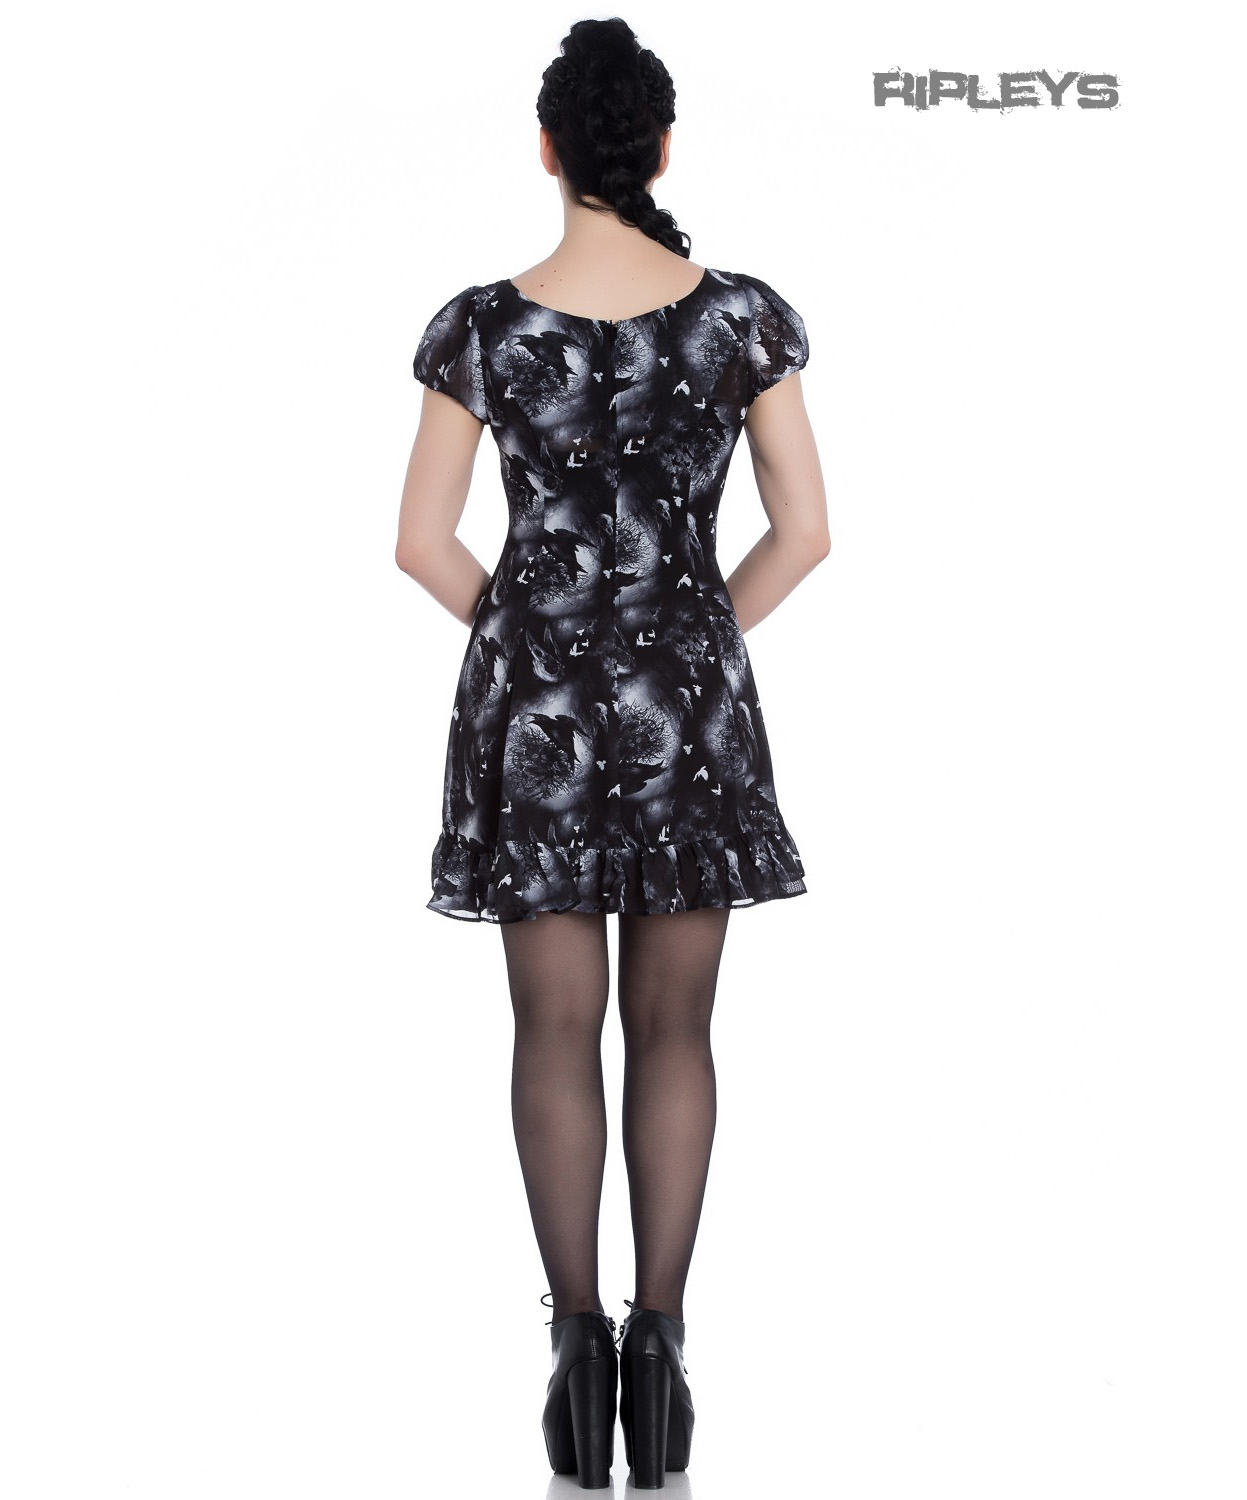 Hell-Bunny-Alchemy-Gothic-Black-Skater-Mini-Dress-ASH-Crows-Skulls-All-Sizes thumbnail 8